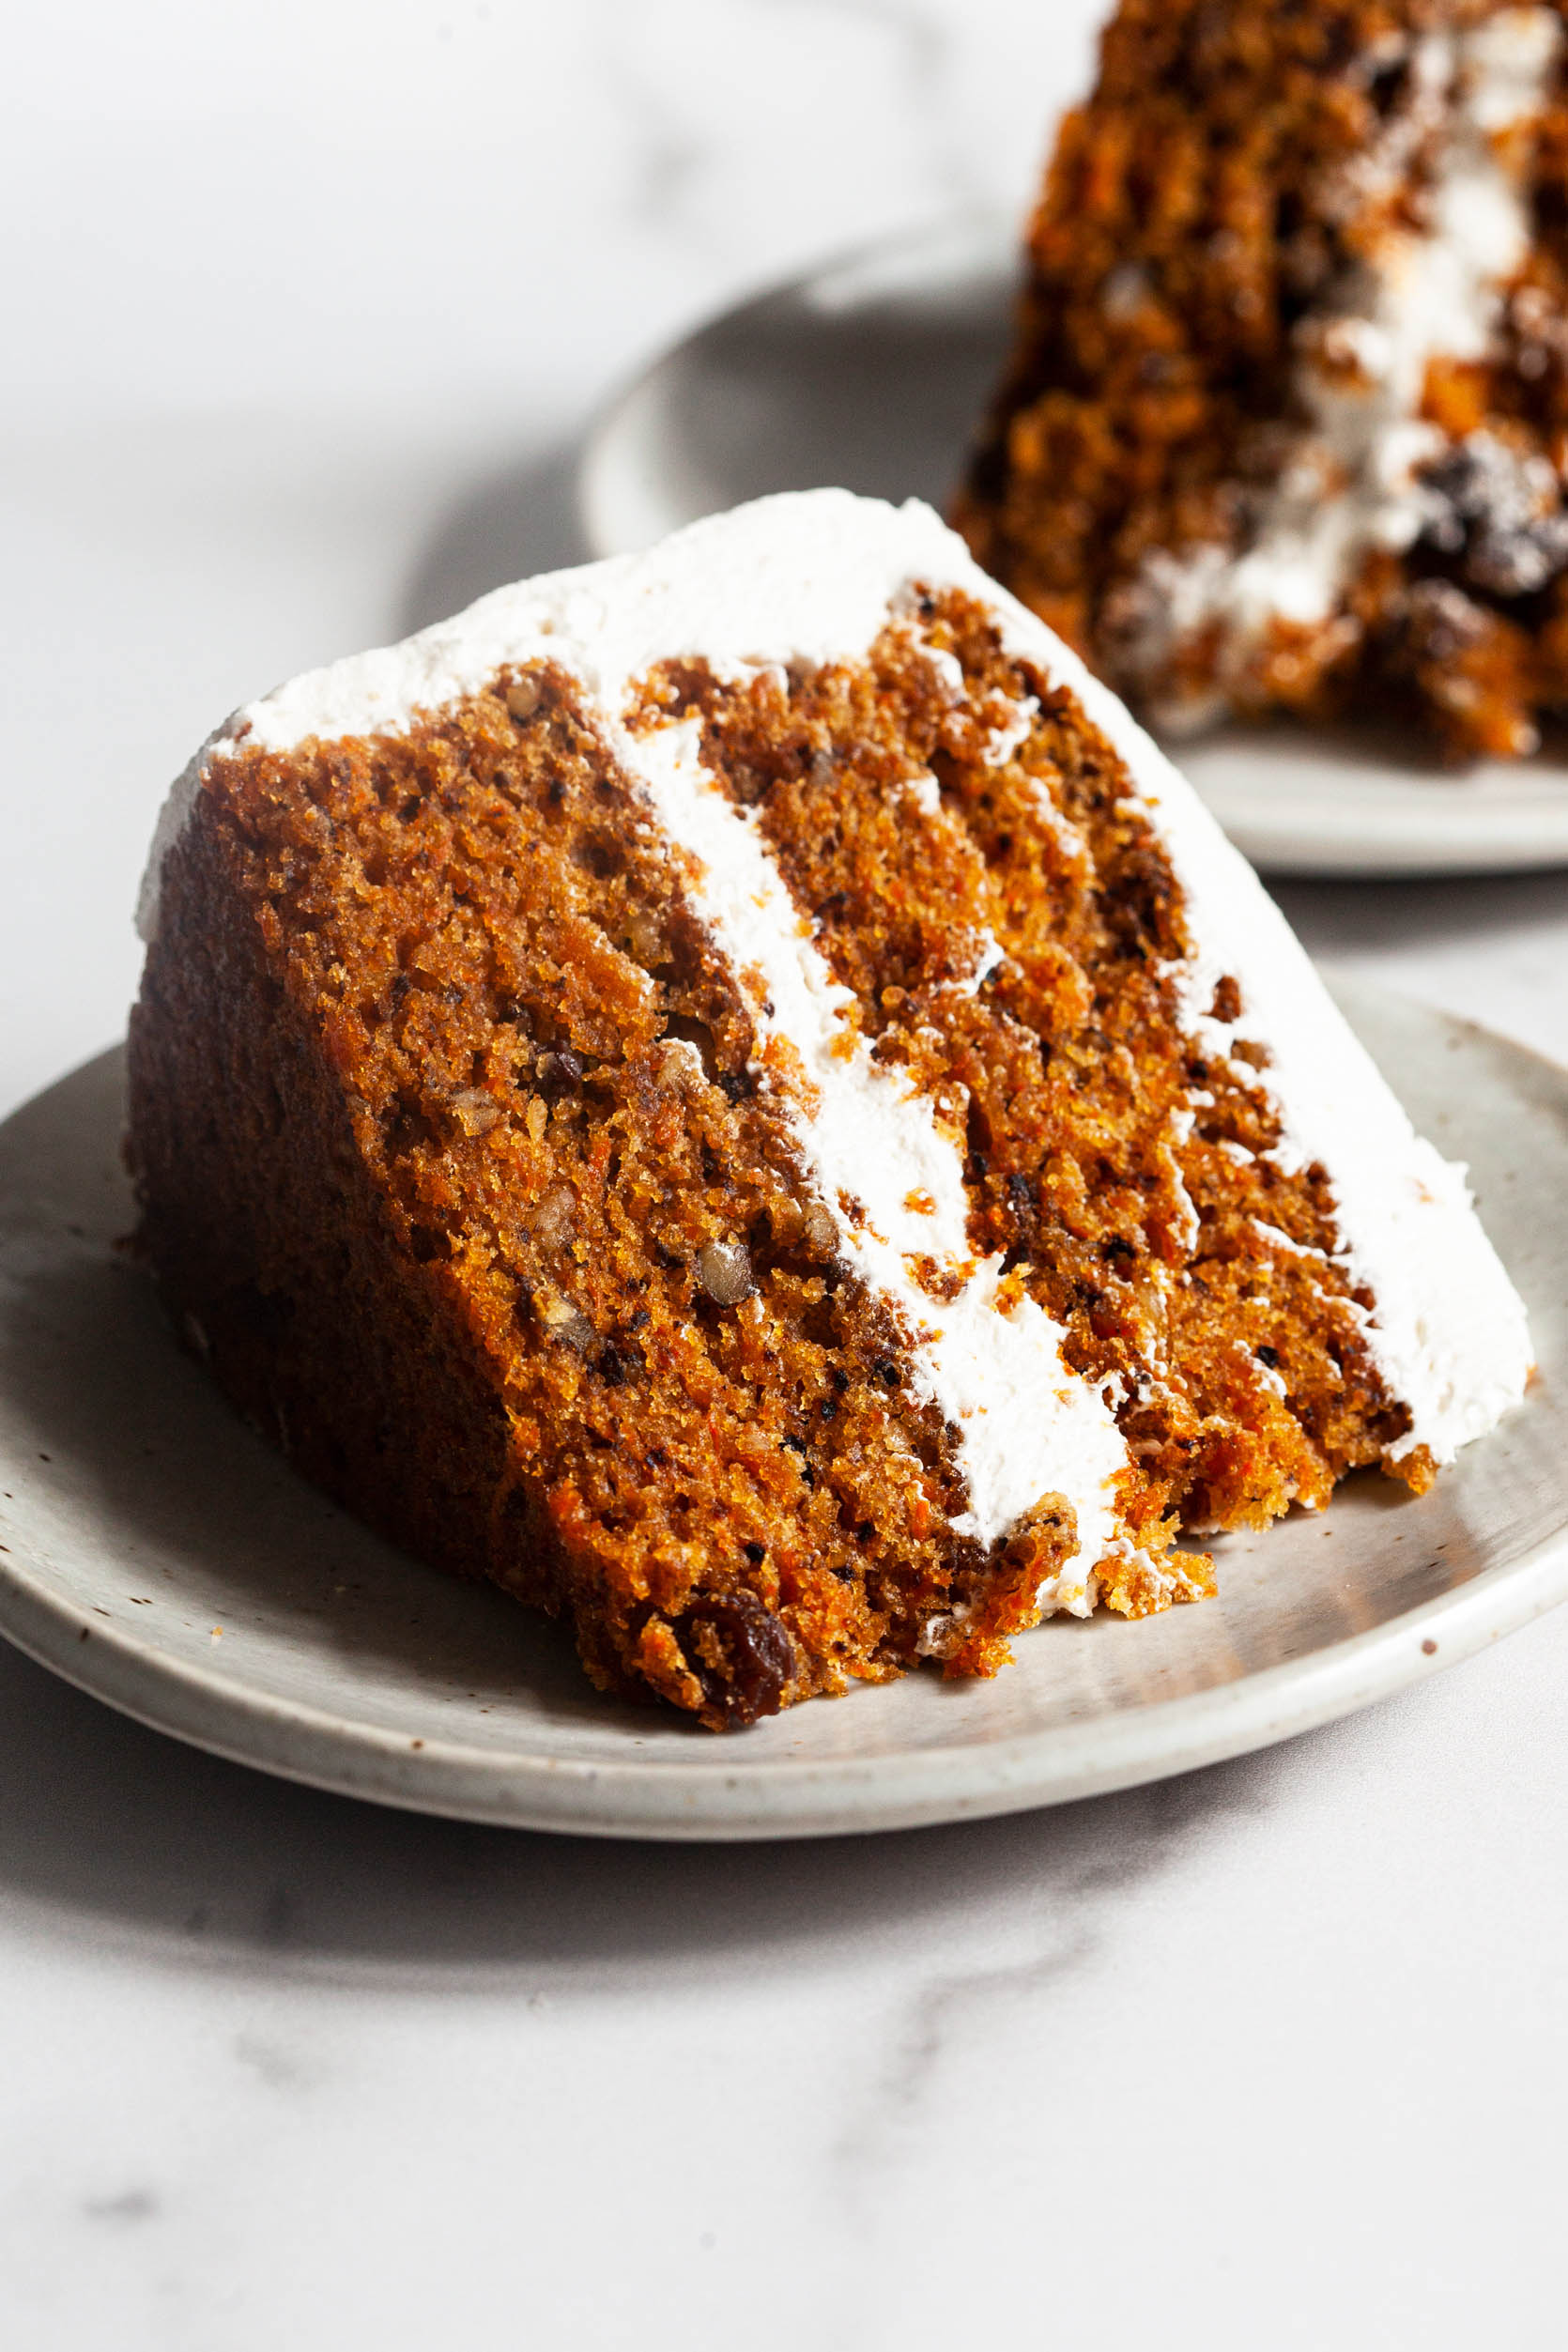 Favorite Vegan Carrot Cake with Cream Cheese Frosting | The Full Helping